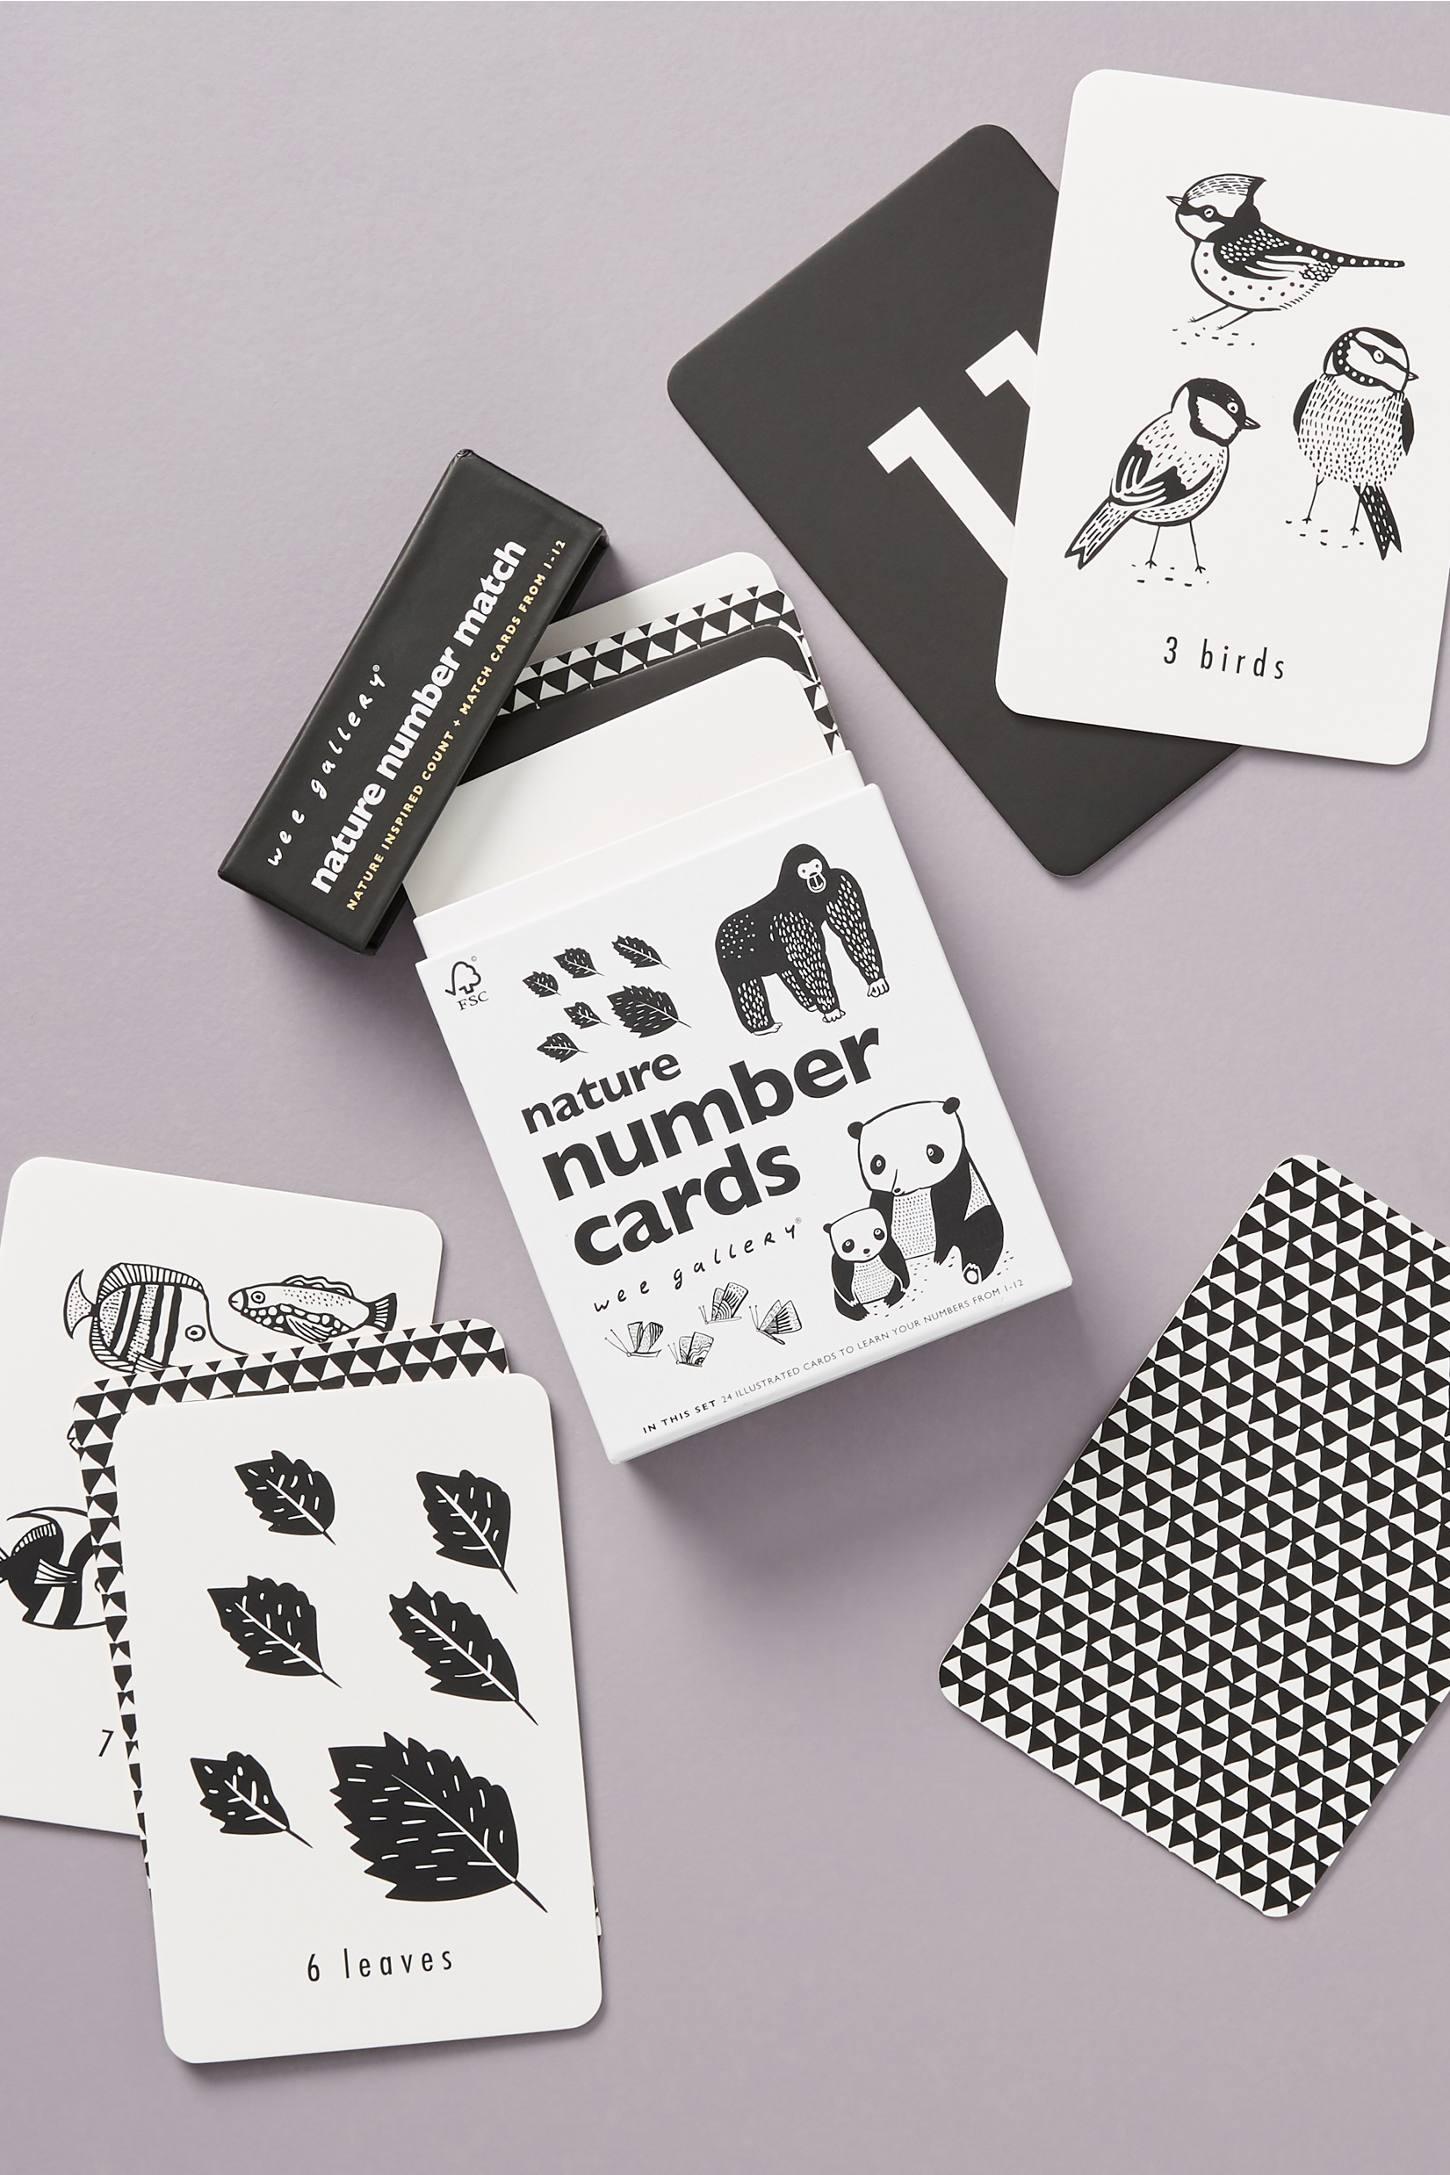 Nature and Number Cards